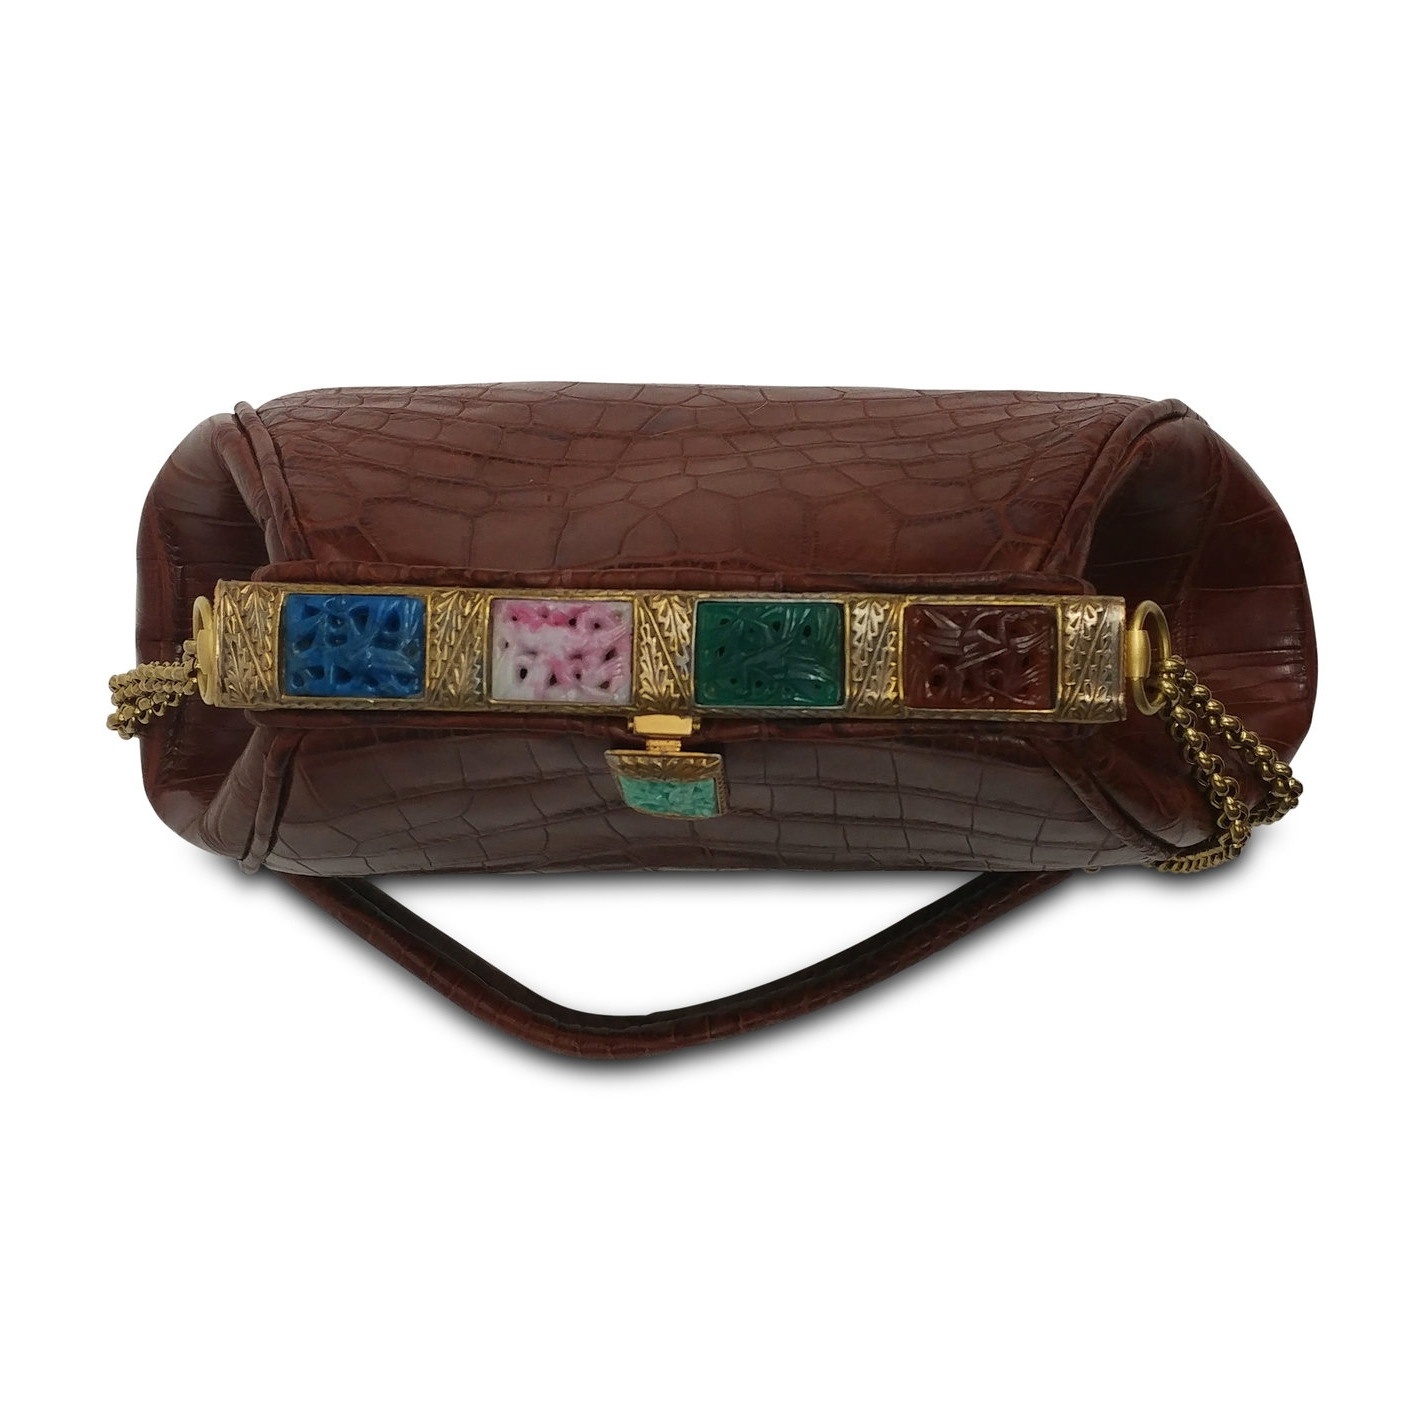 VINTAGE HANDBAG FRAMES - Select your favorite frame, bag material and color to create the only bag of its kind in the world.